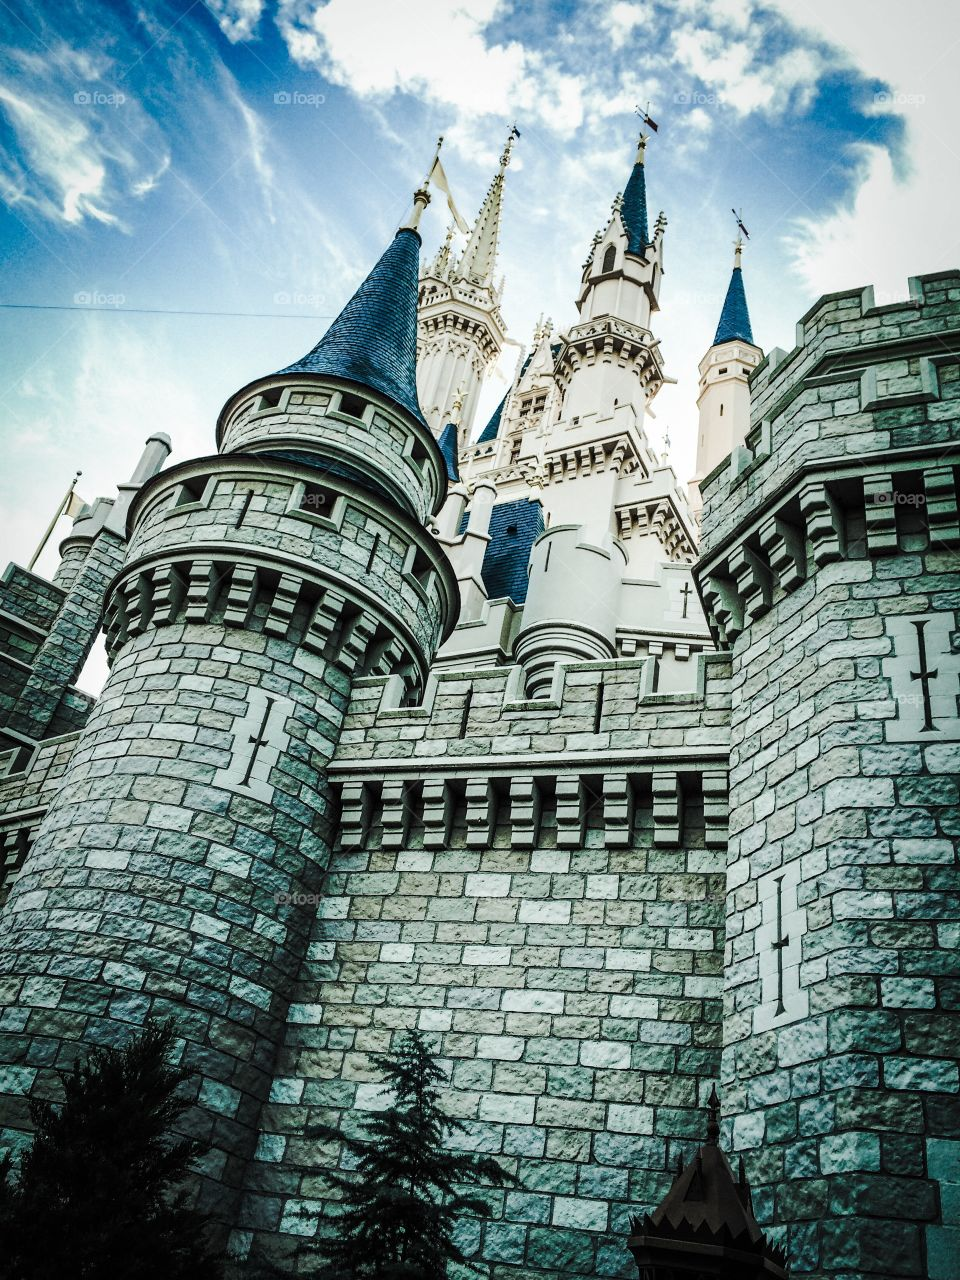 Cinderella Castle Walt Disney World. Grab your glass slippers and make a run for it.